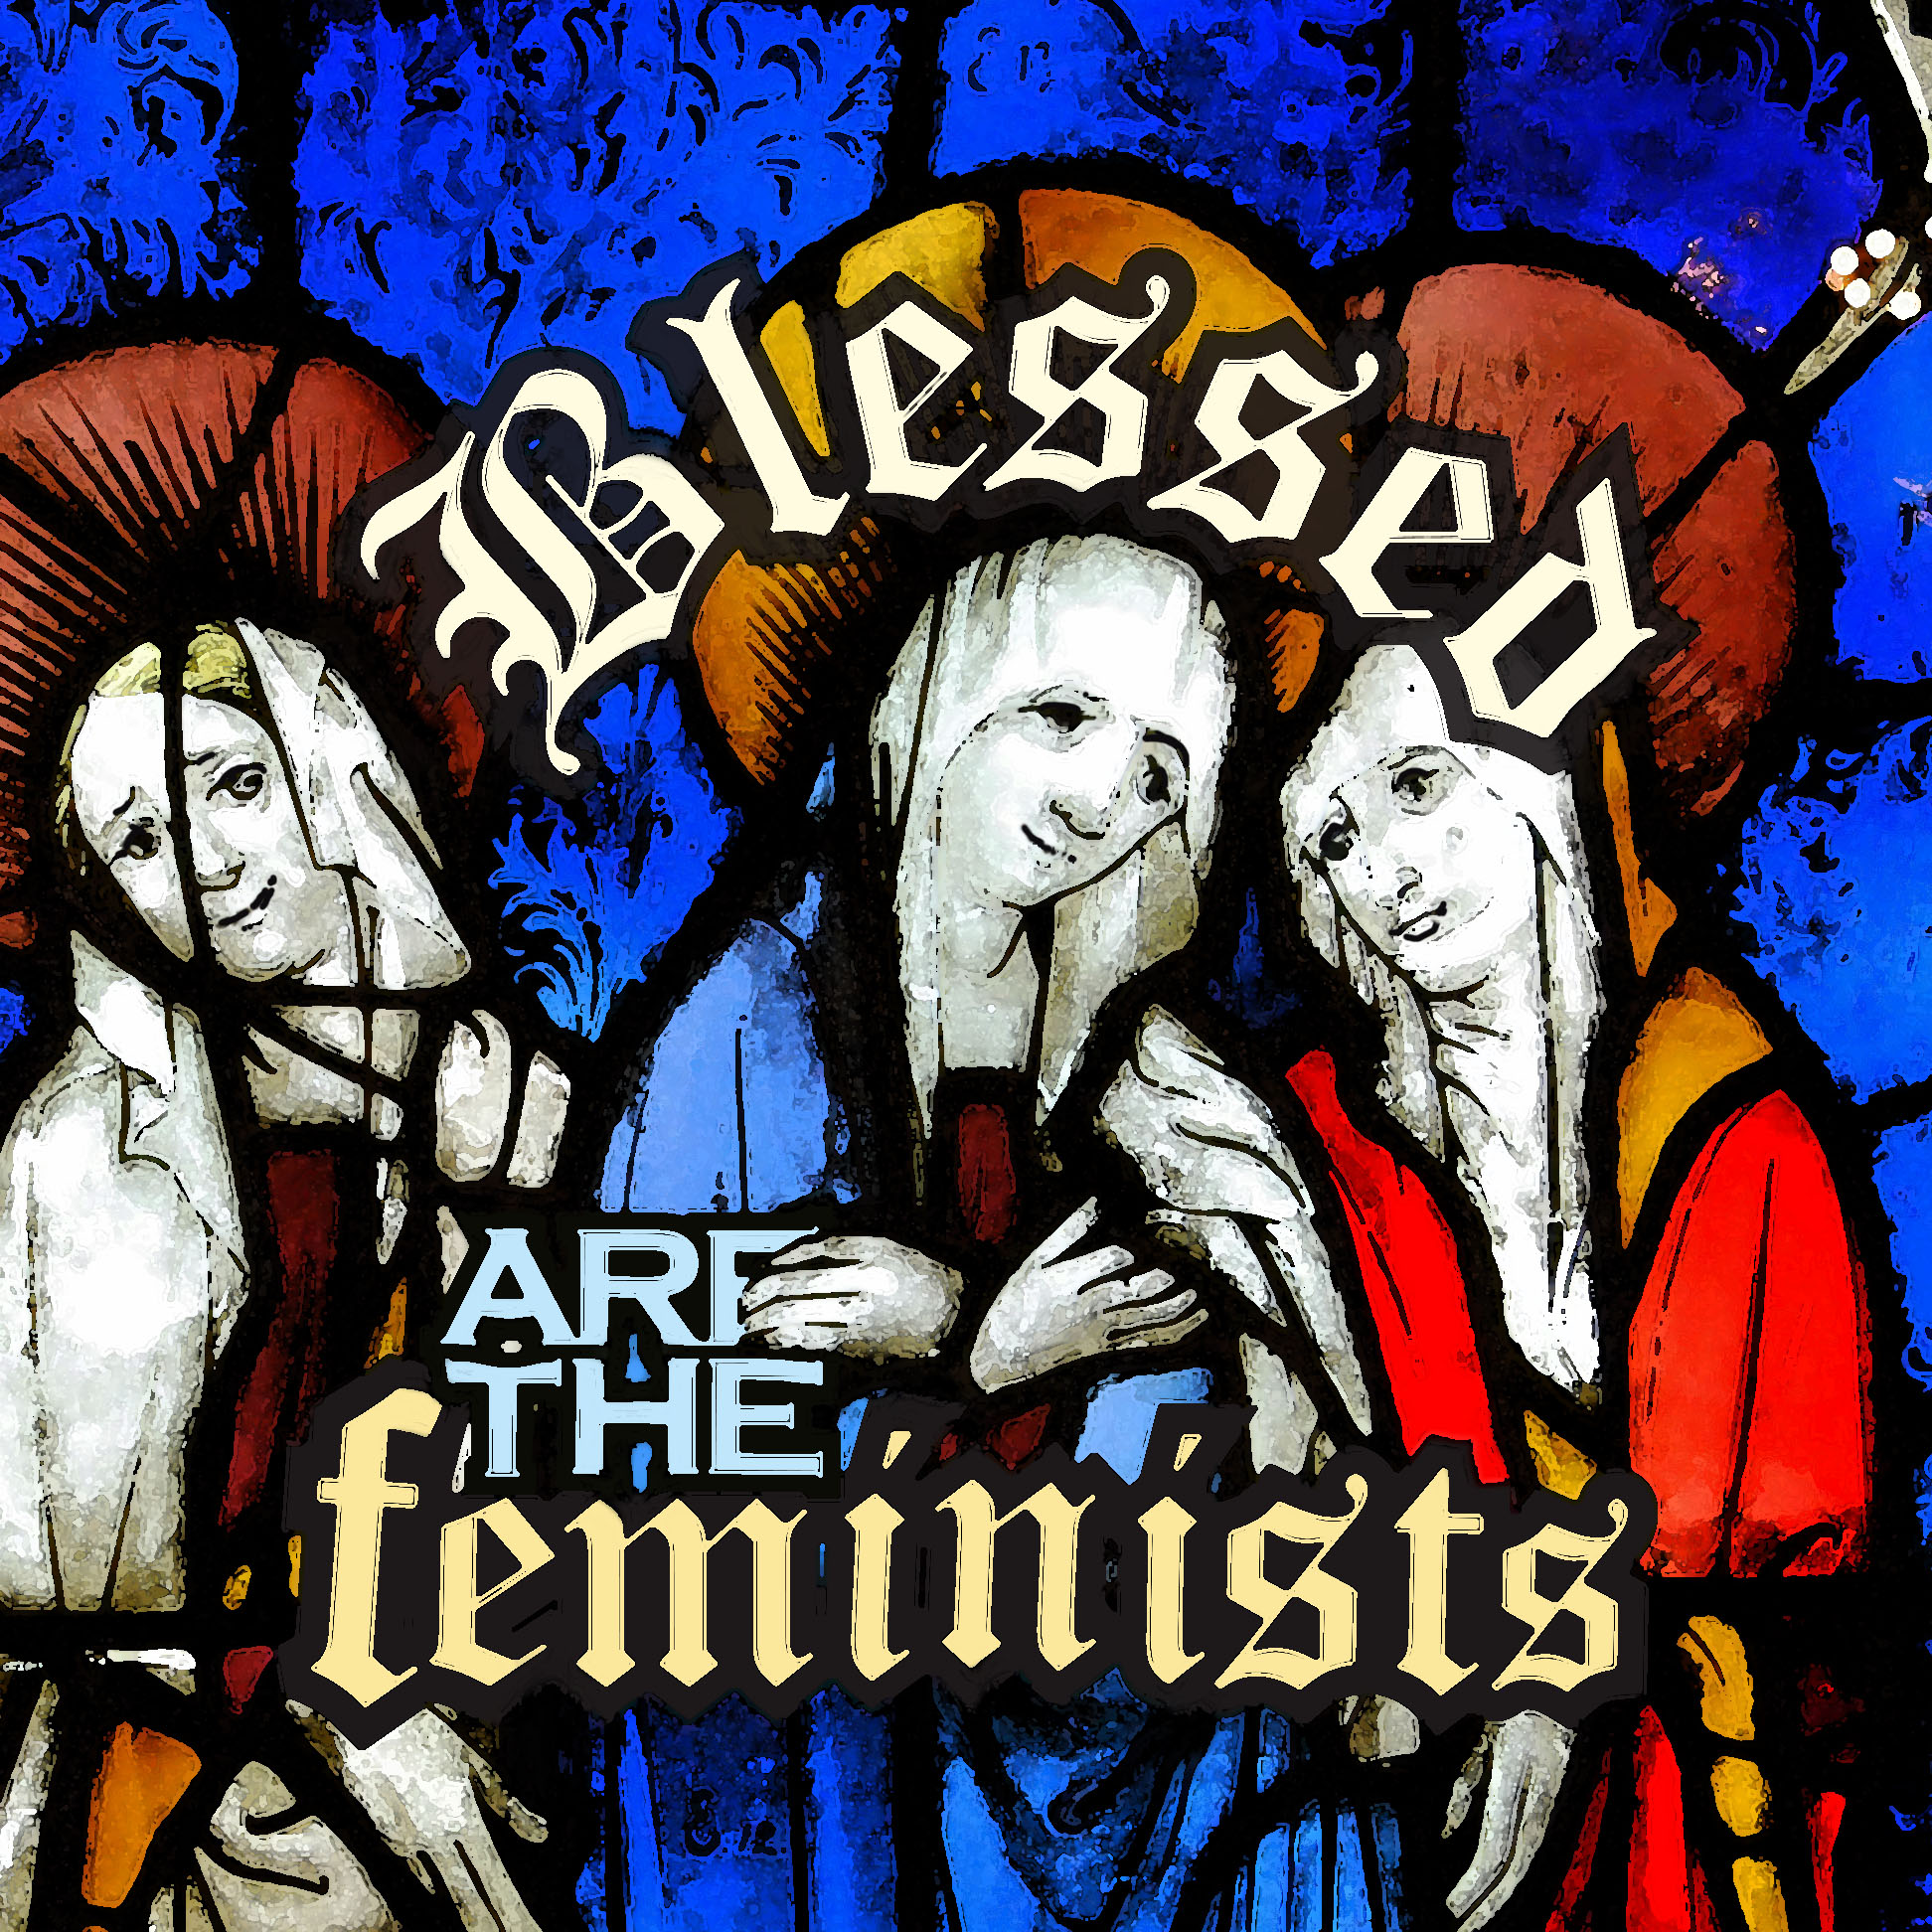 About - Find out what Blessed Are the Feminists is all about.